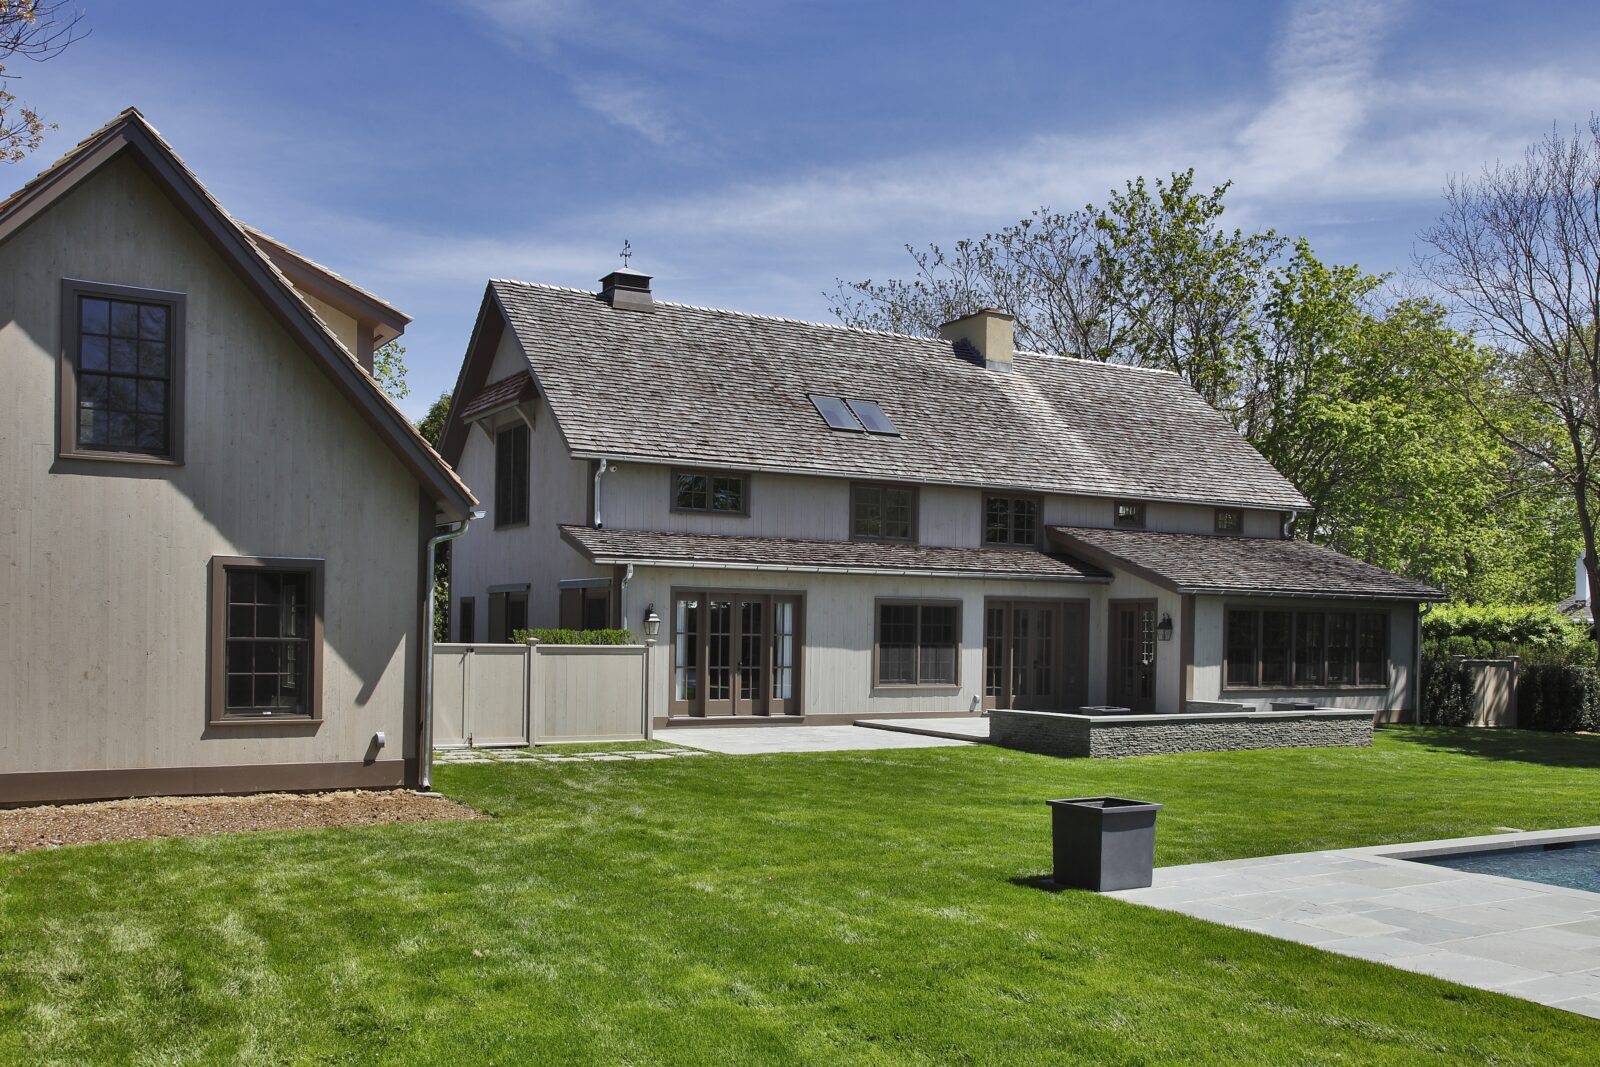 Tate Barn Home In East Hampton, NY - PHOTOGRAPHY BY CHRIS FOSTER